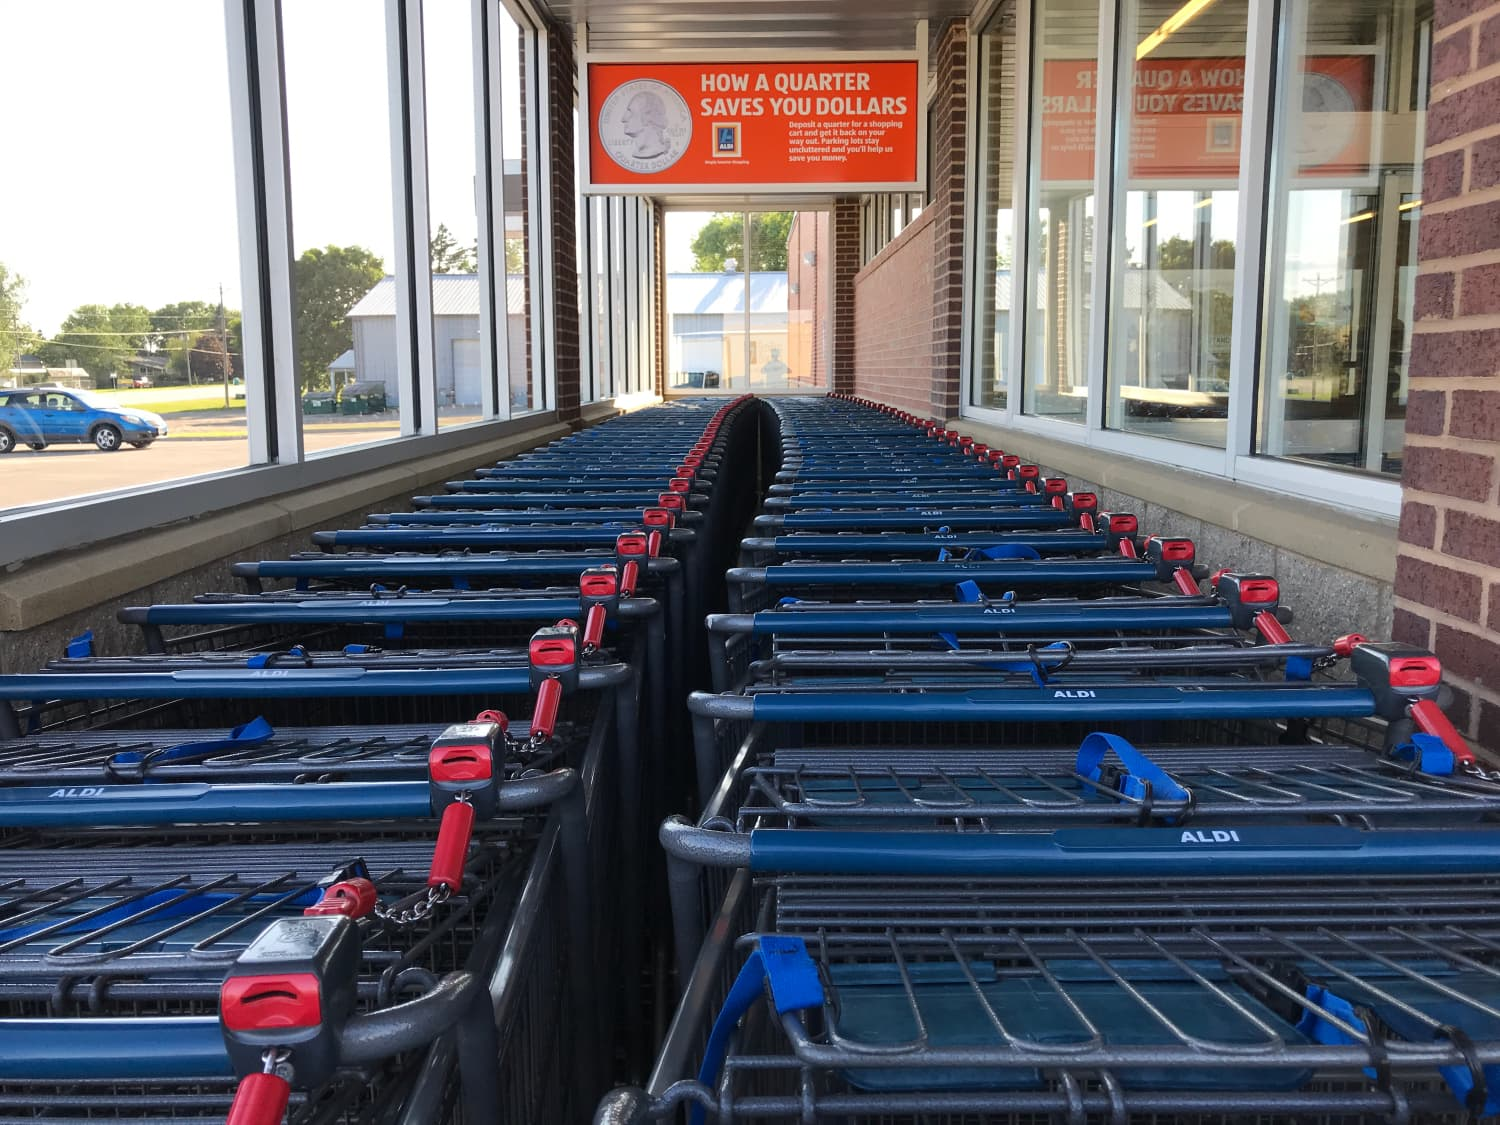 The Dos and Don'ts of Proper Cart Etiquette at Aldi